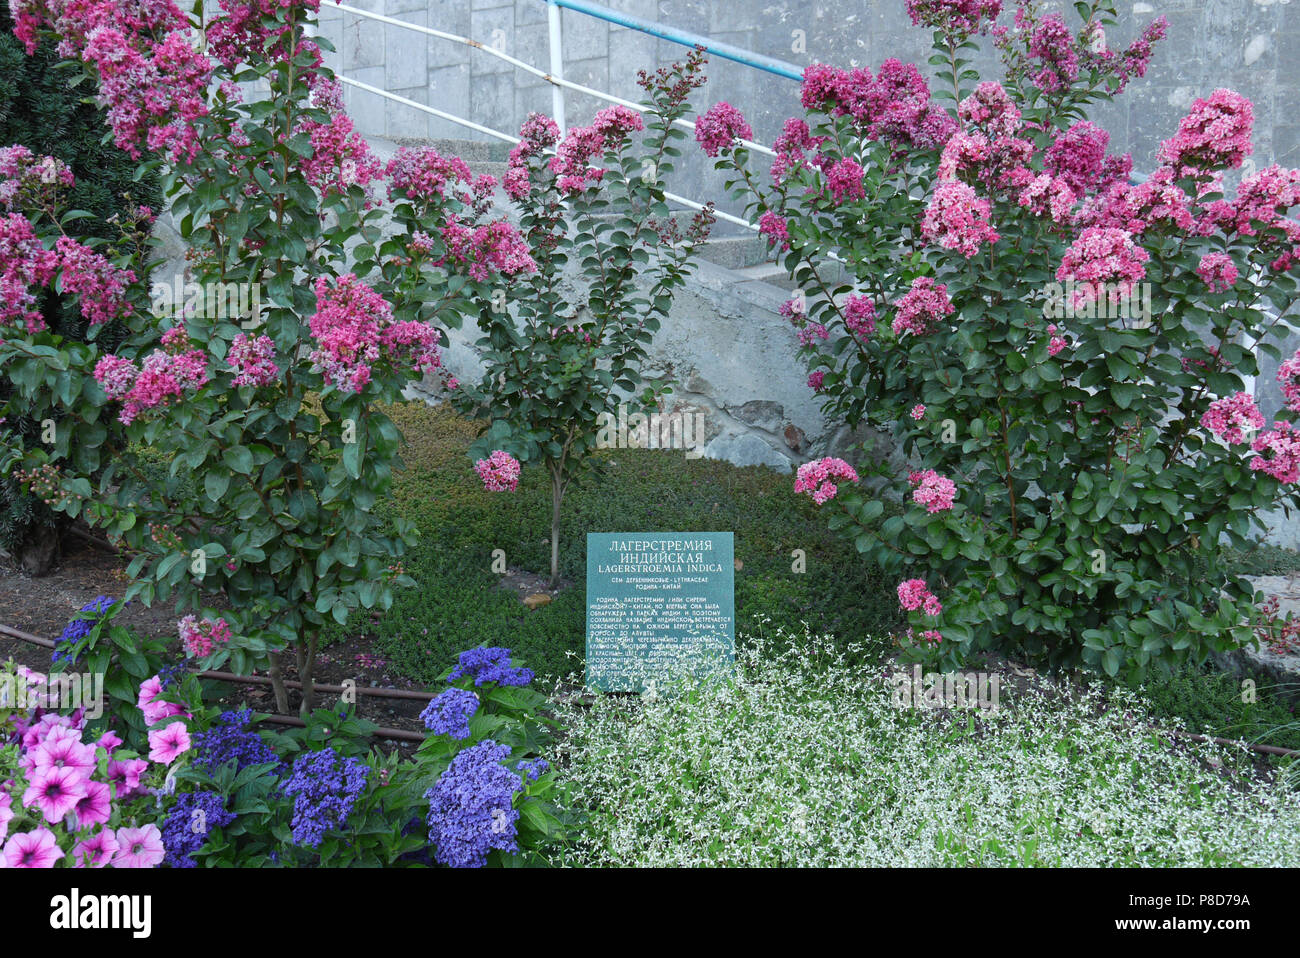 Bushes With Pink Blue And White Flowers In A Botanical Garden For